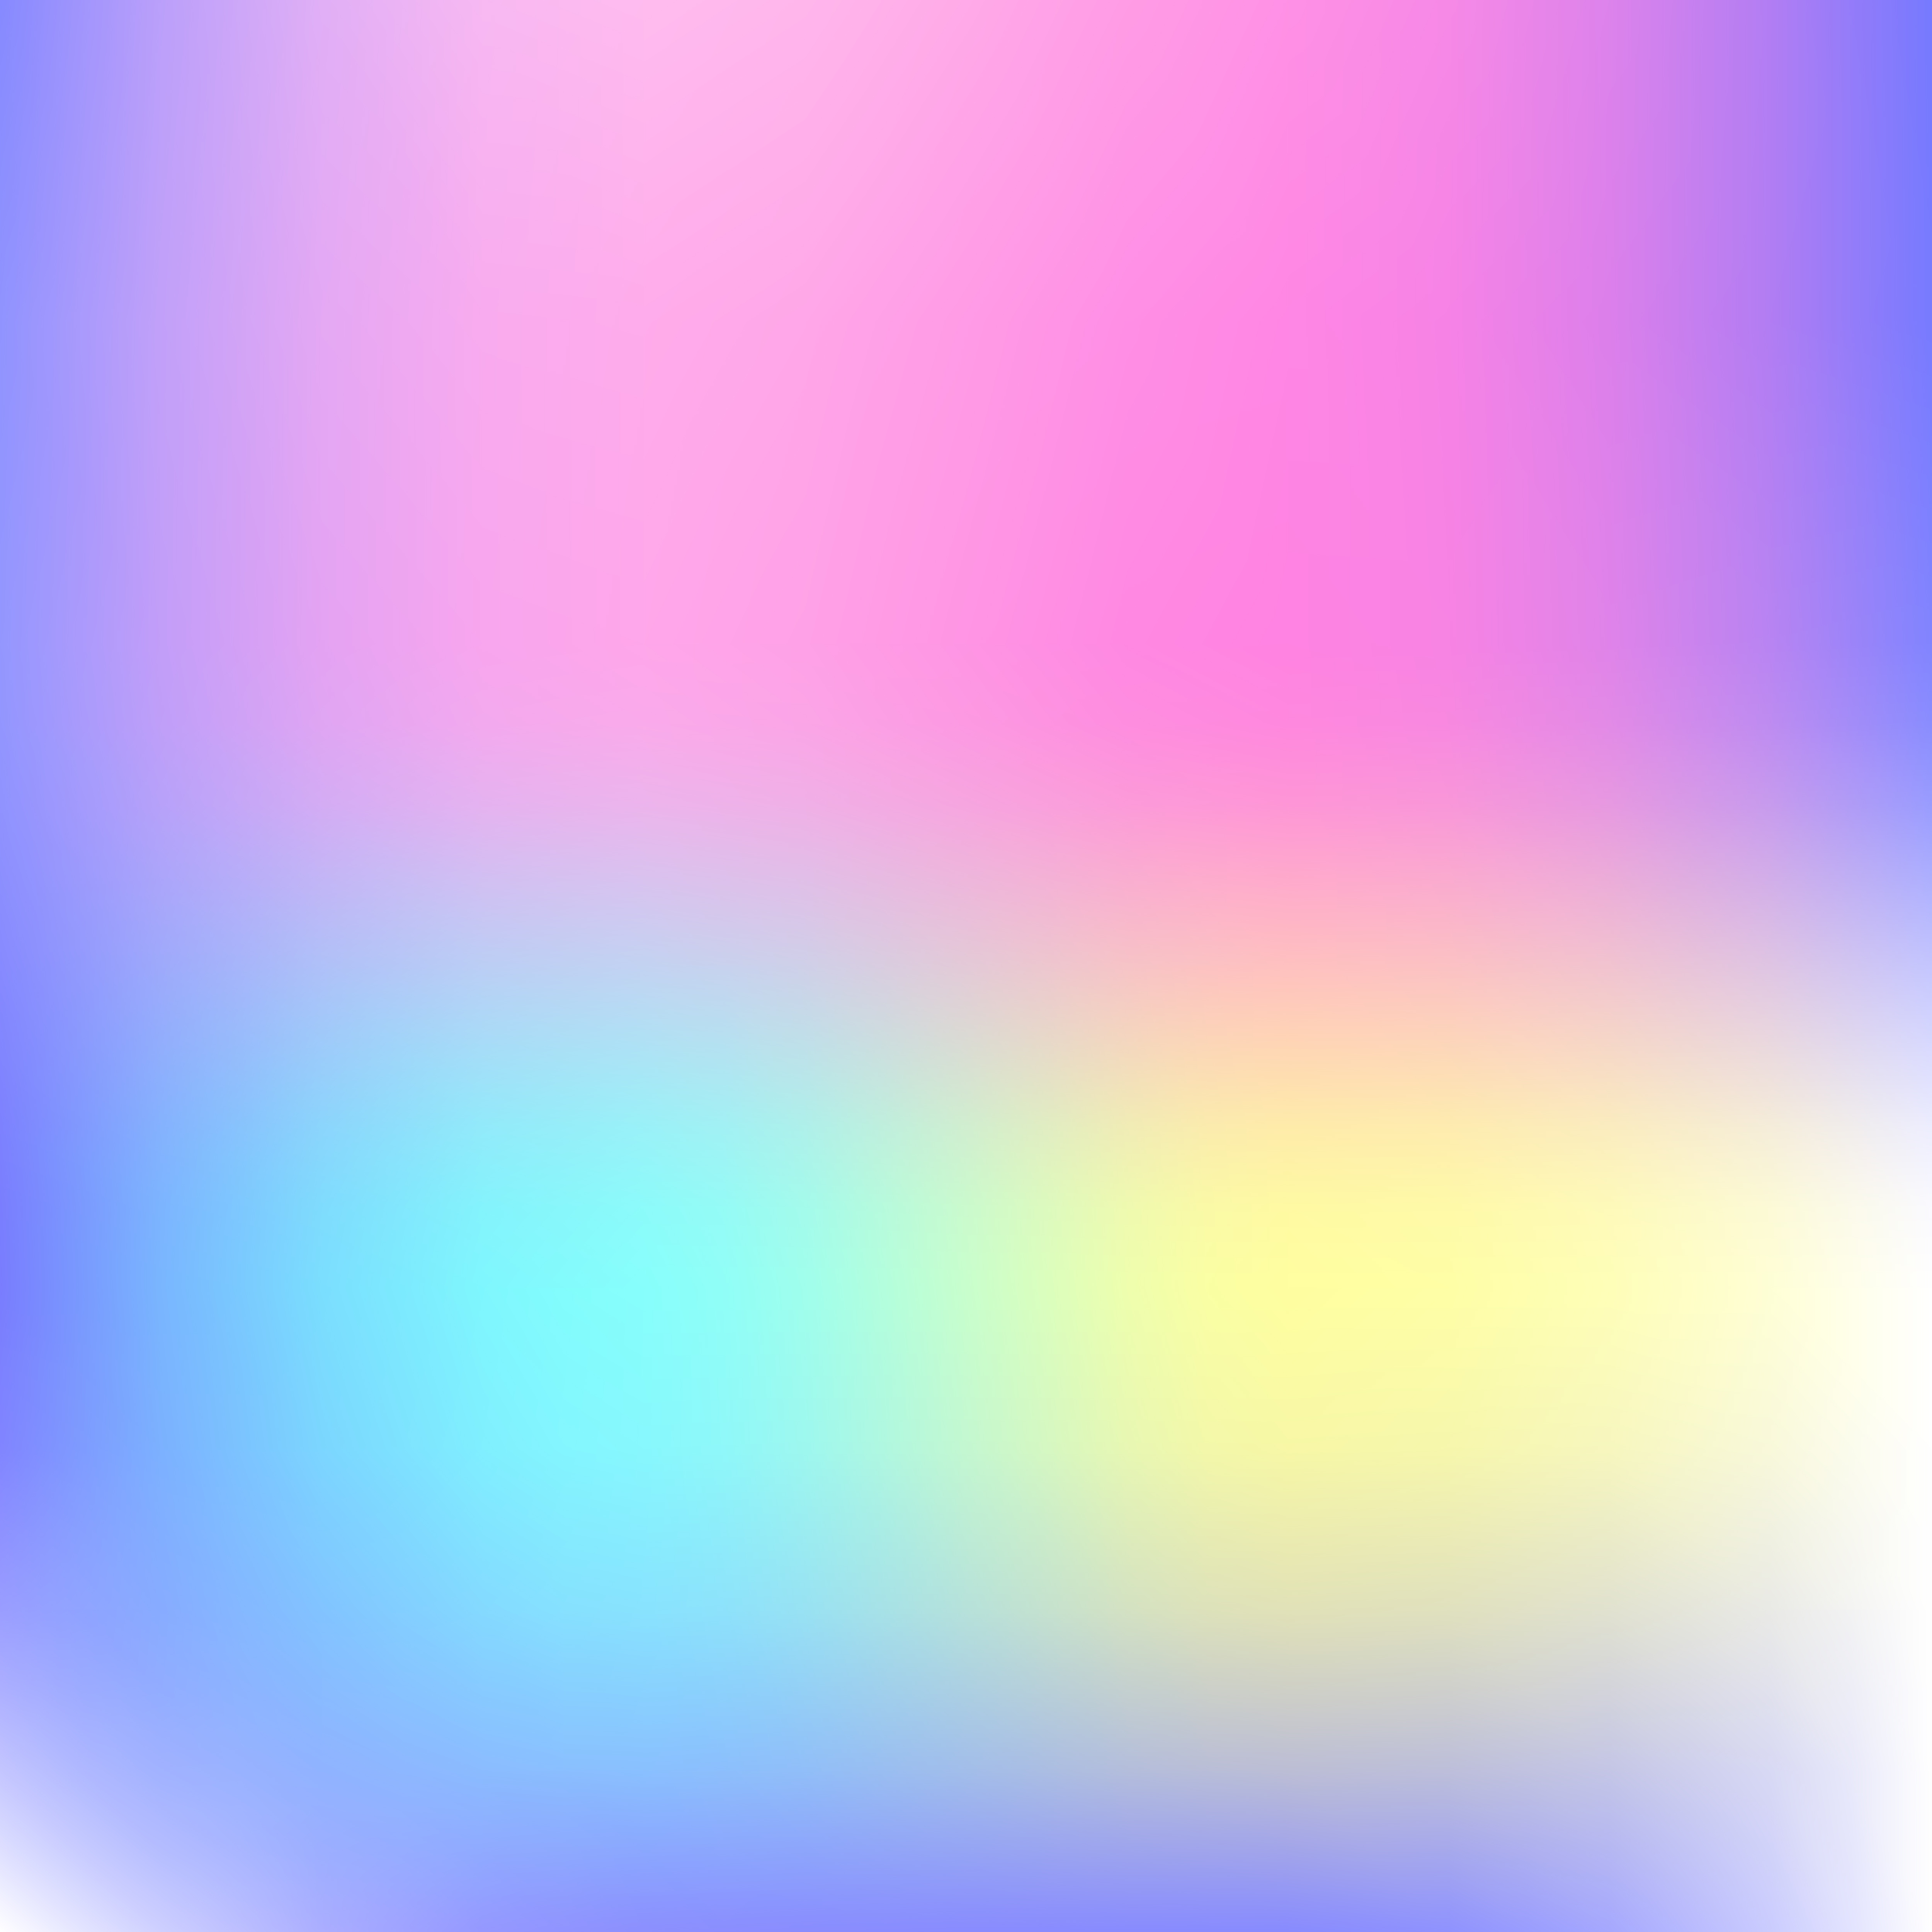 Abstract Blur Gradient Background With Trend Pastel Pink Purple